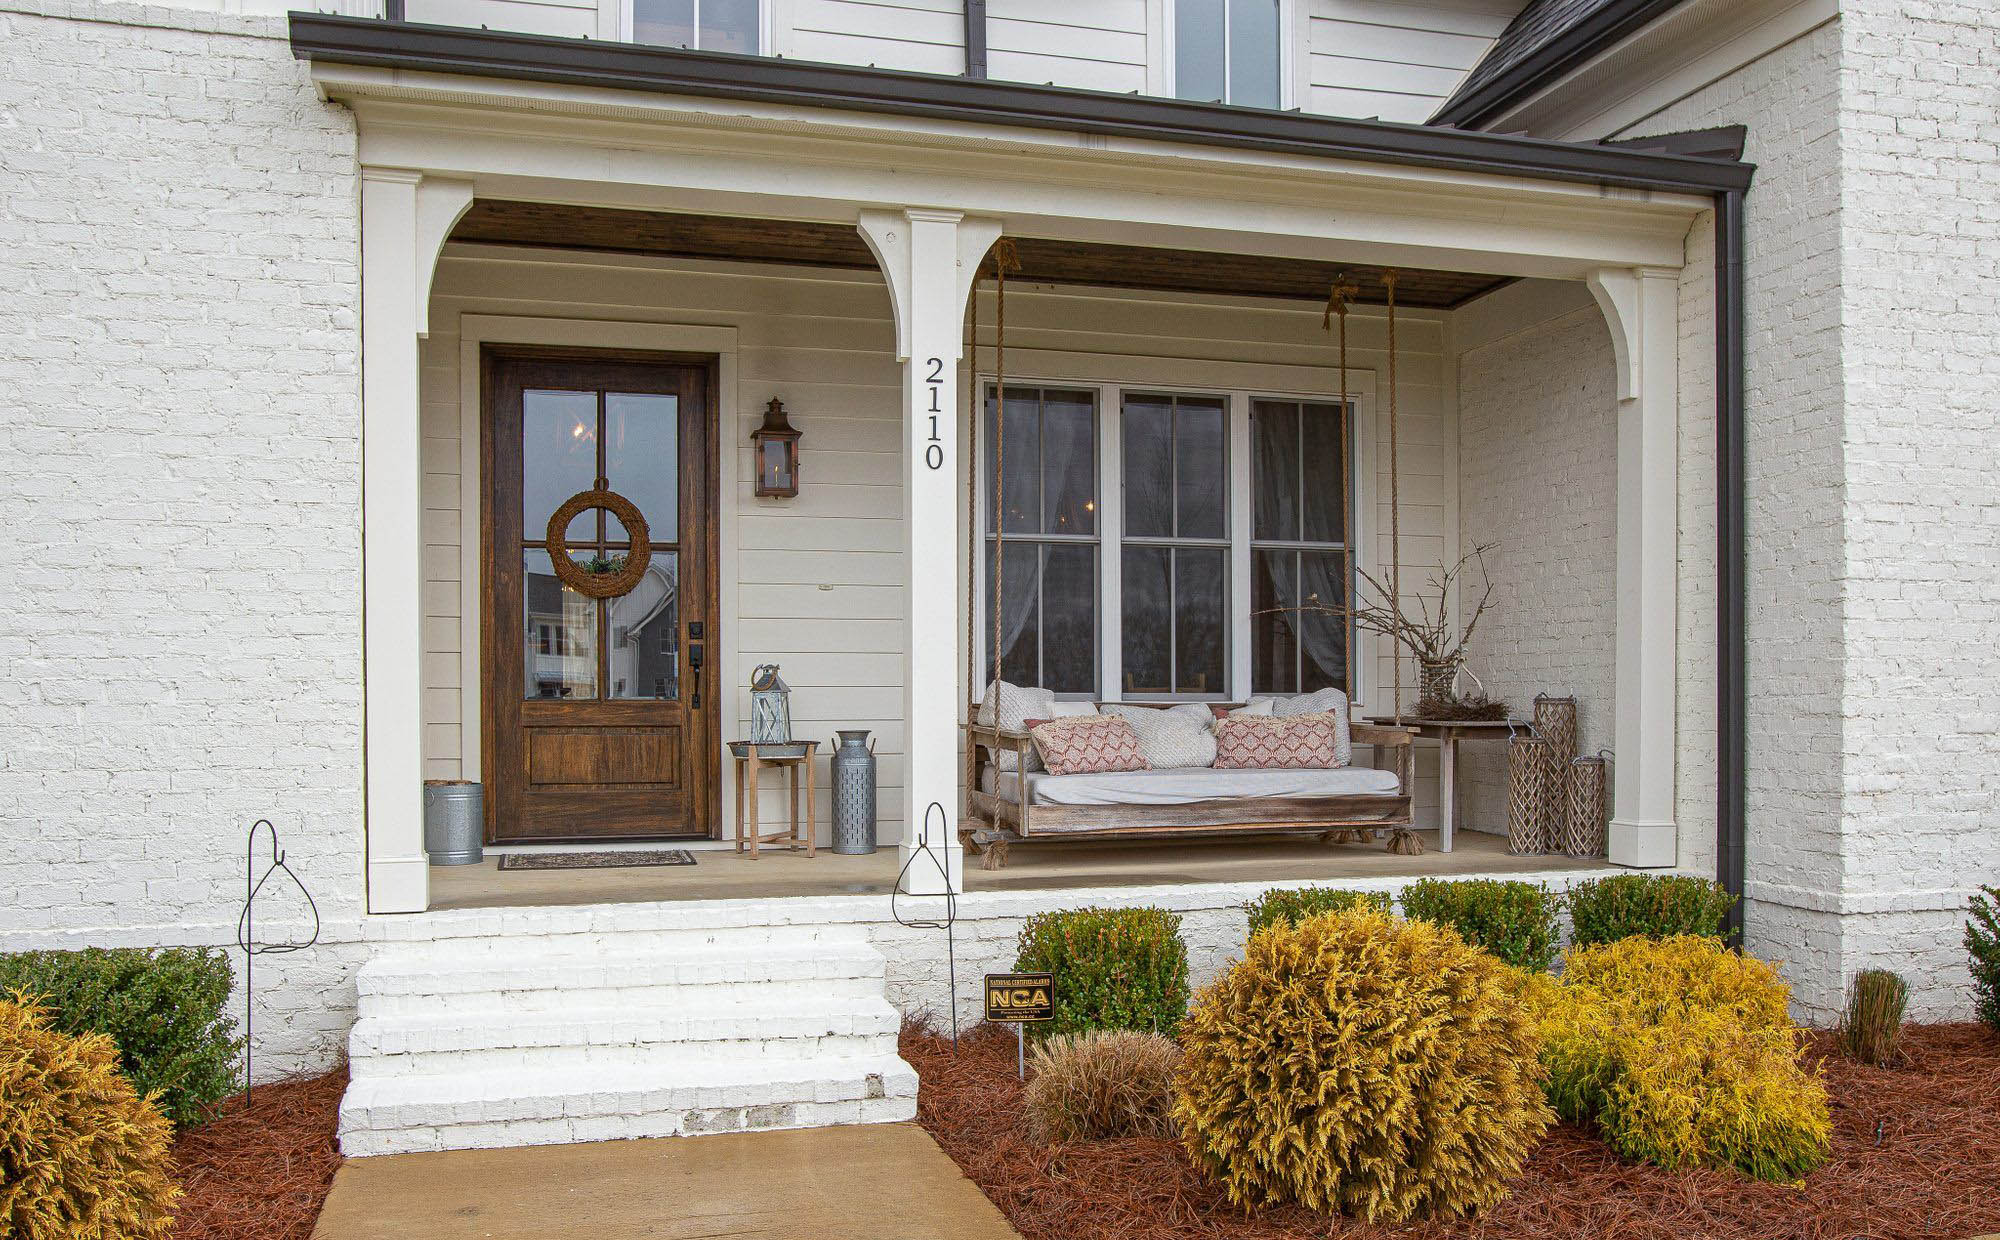 White painted wood soffit and fascia on this white brick farm house style home. Real wood front door with porch swing.